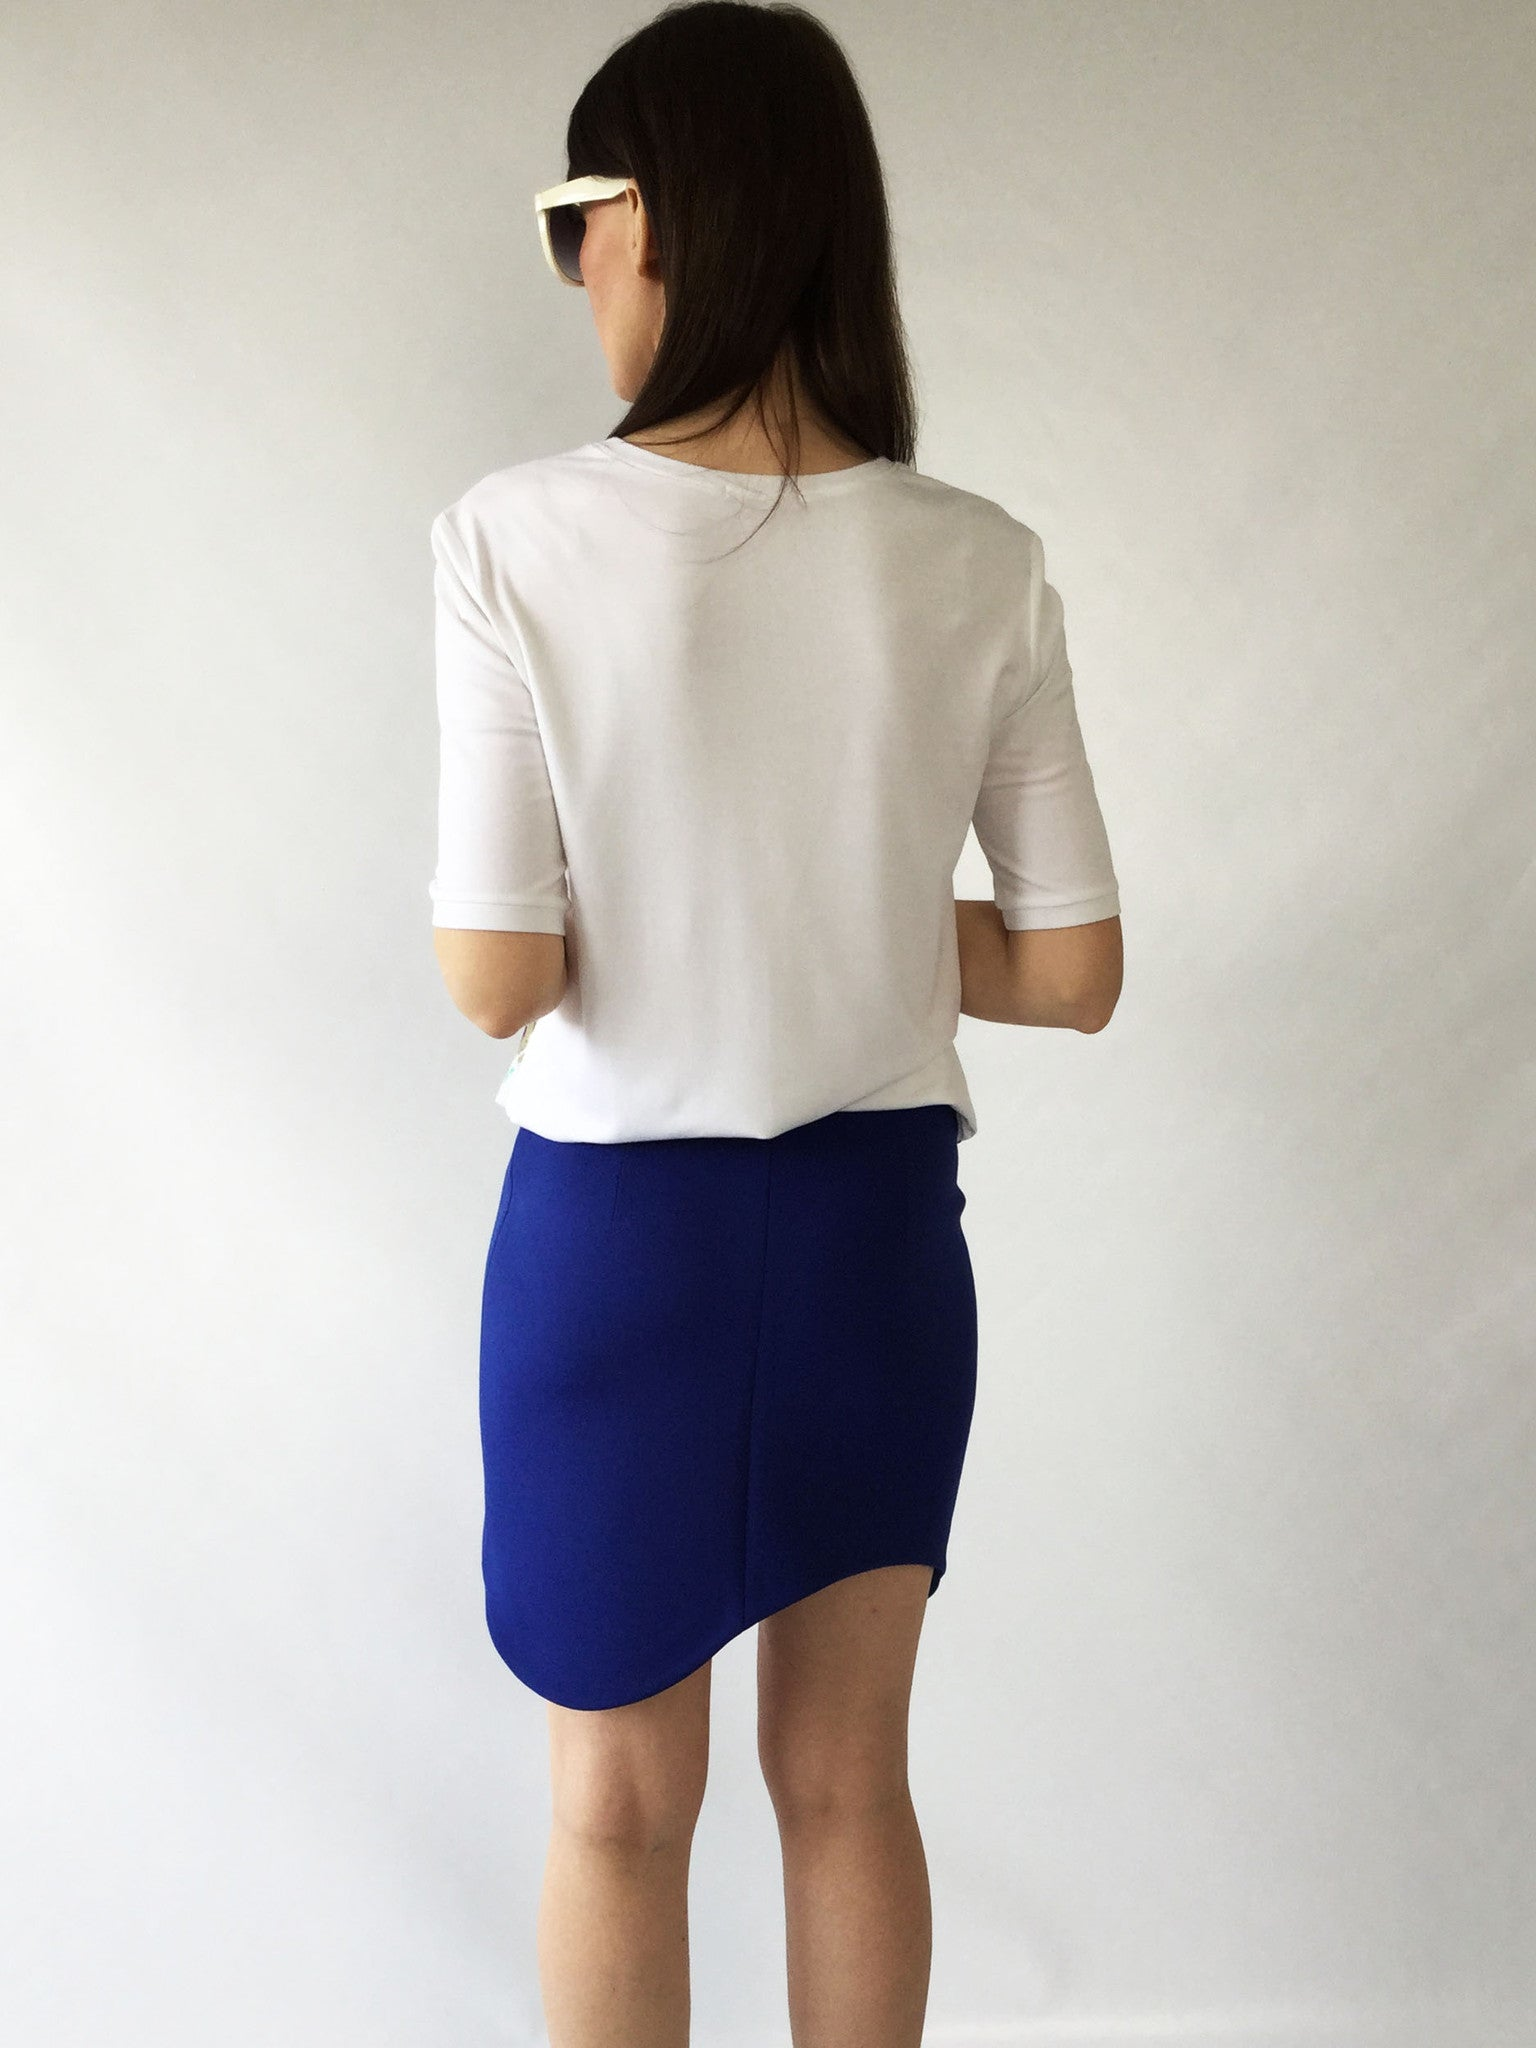 Jersey and woven fabric top